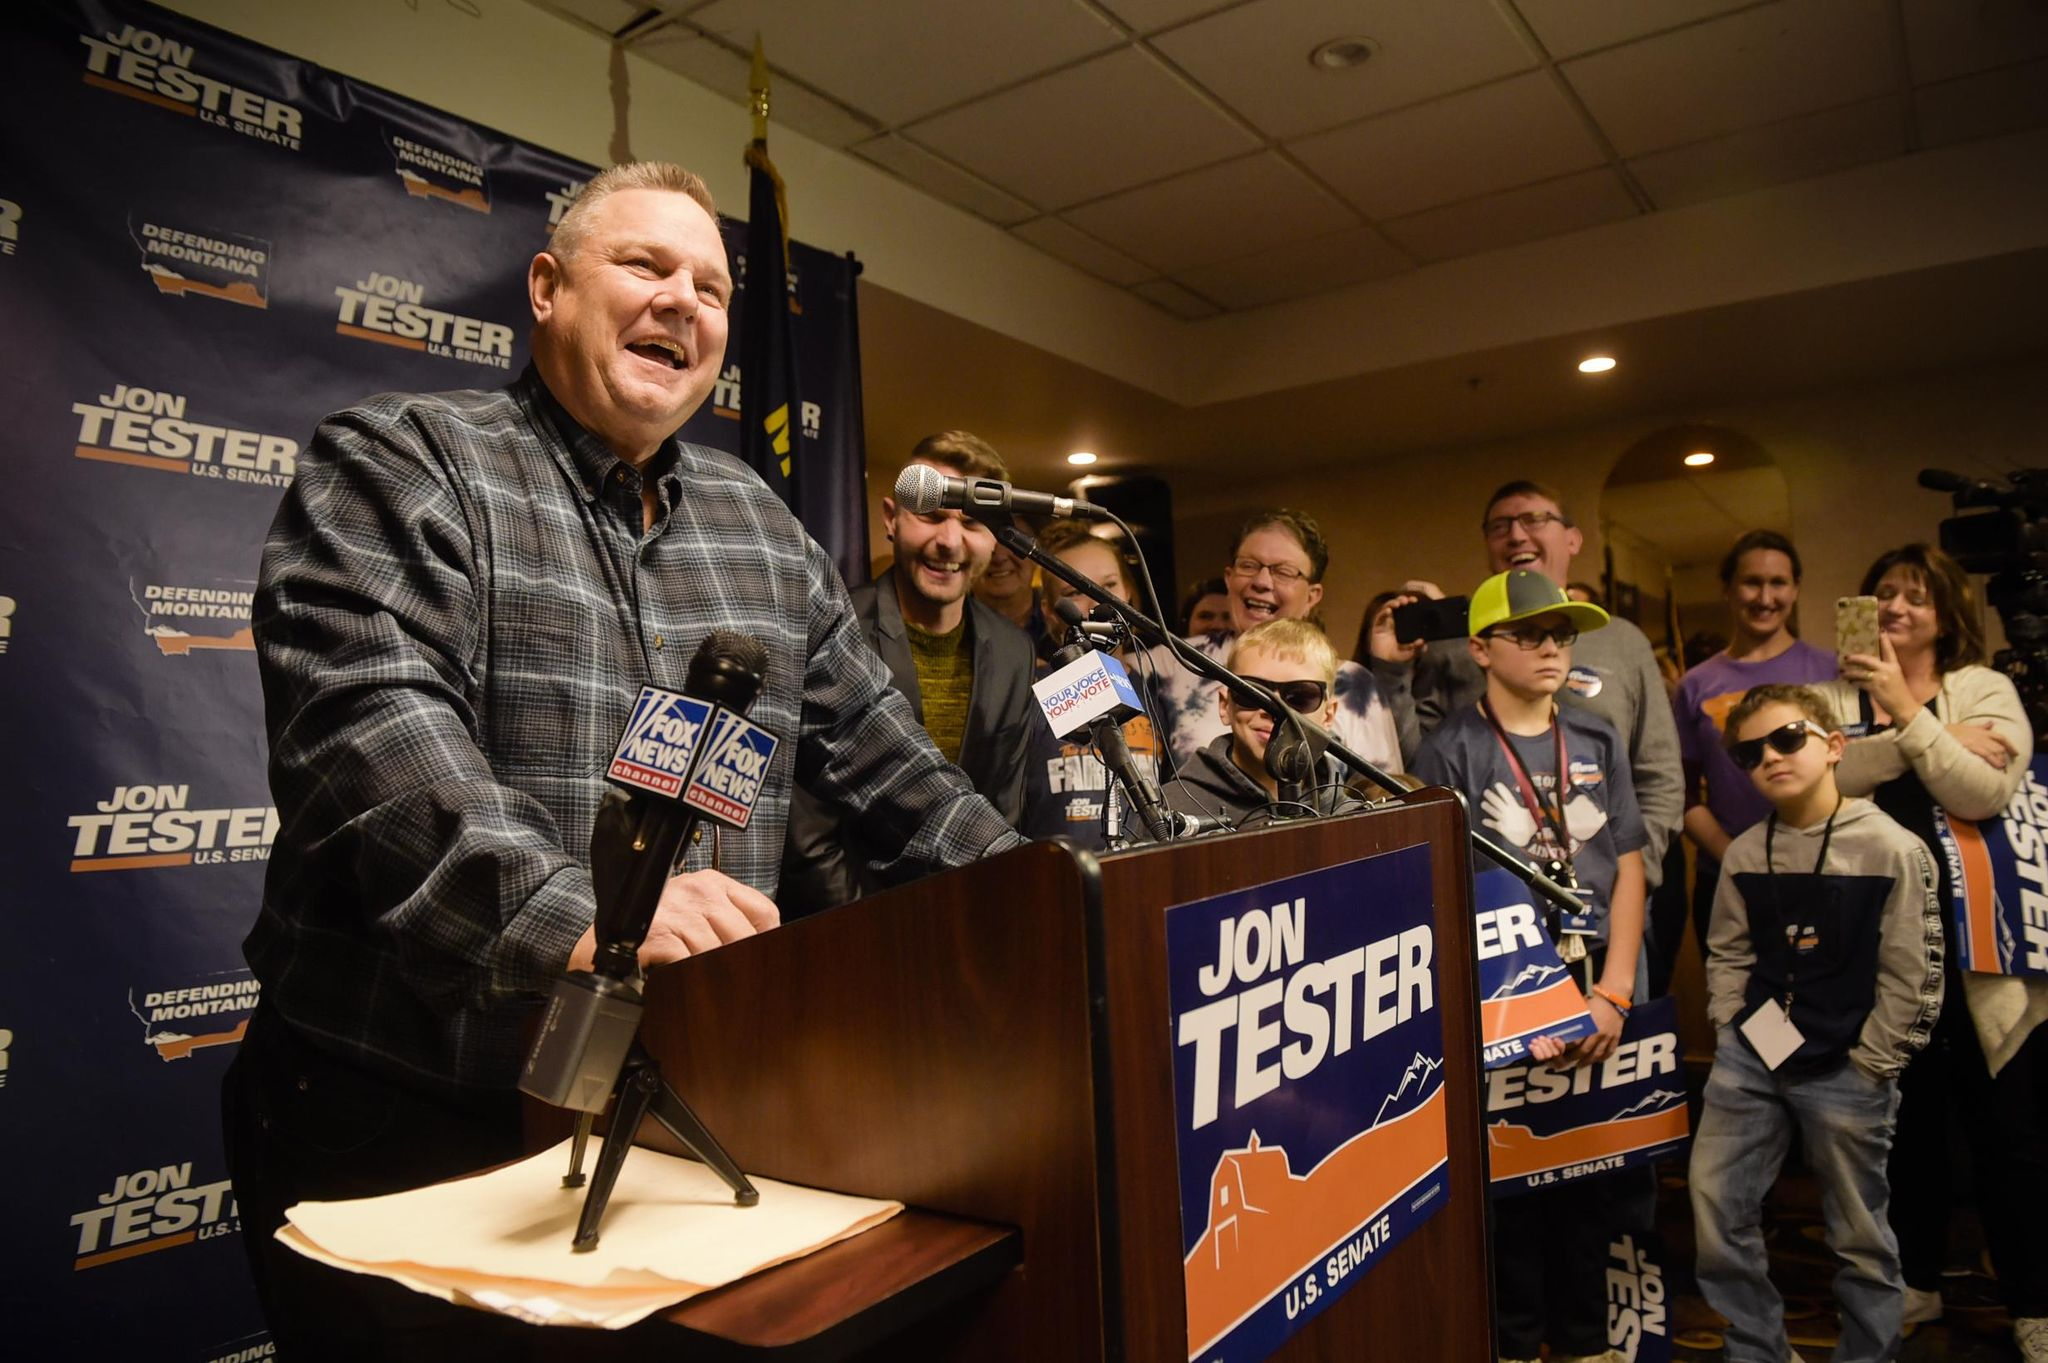 Tester wins by poaching Trump voters, holding his base